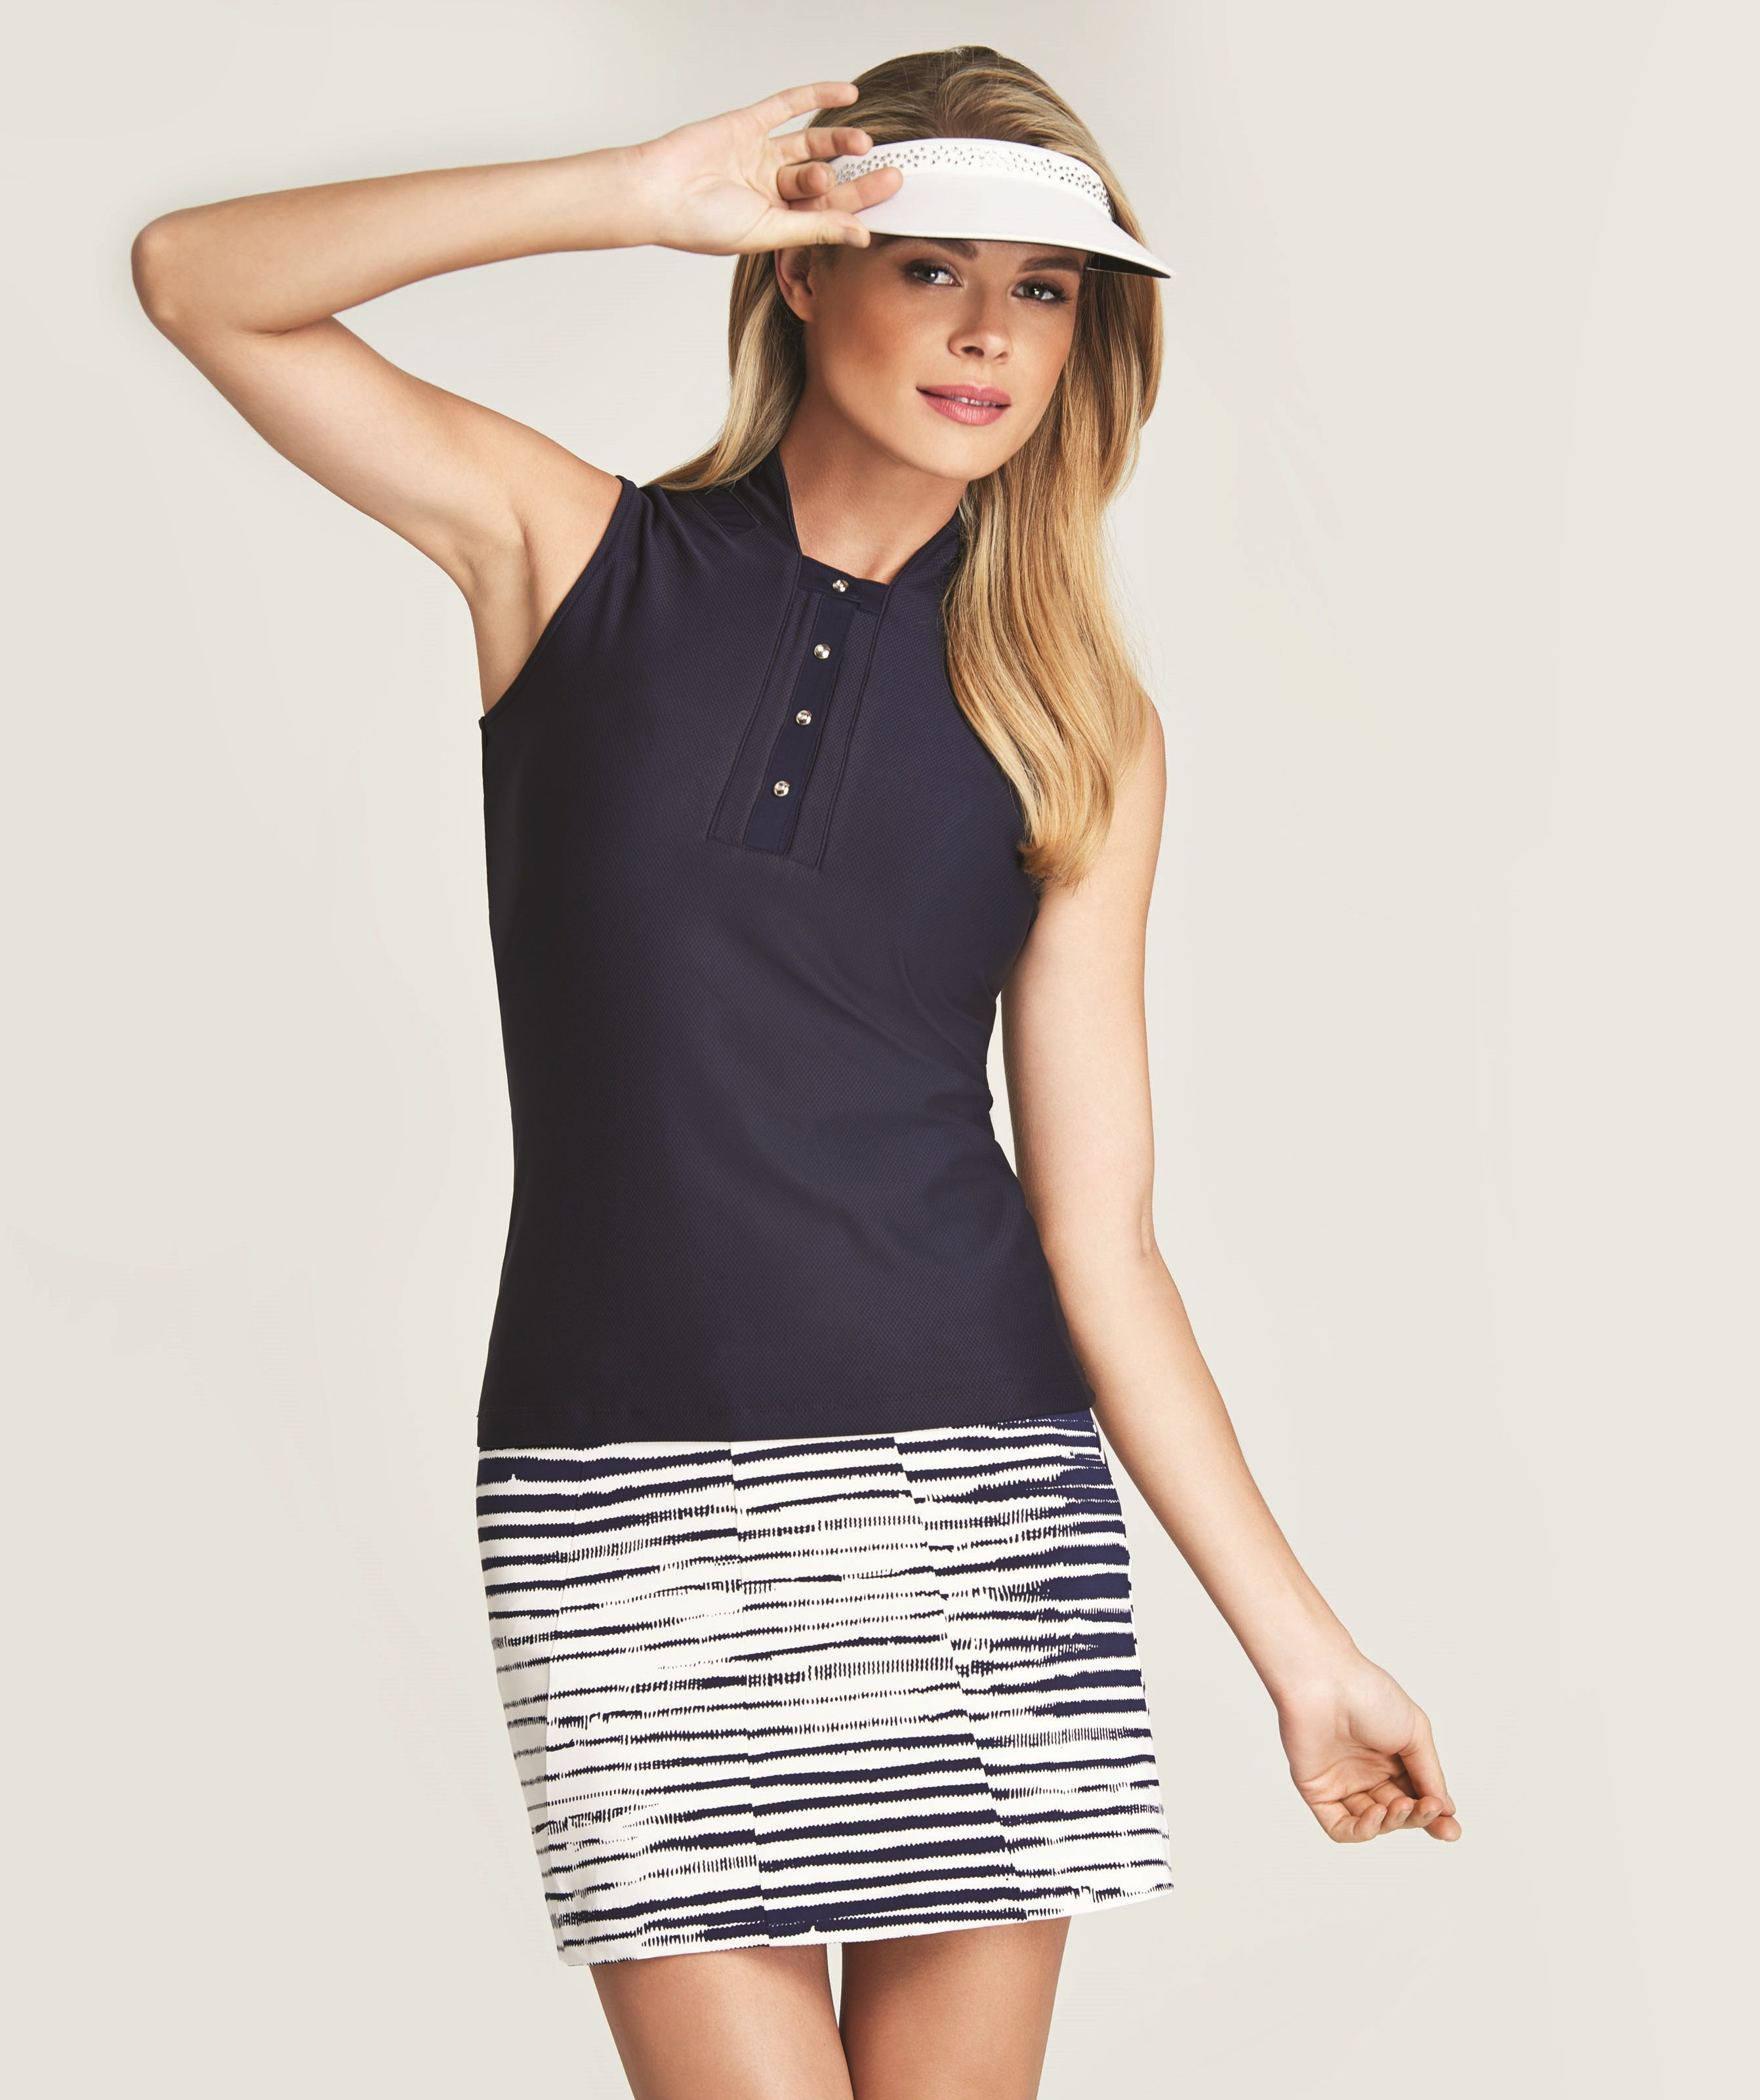 Check out what Lori's Golf Shoppe has for you on and off the golf course: Greek  Isles (Perrie/Gabby) Tail Golf Outfit